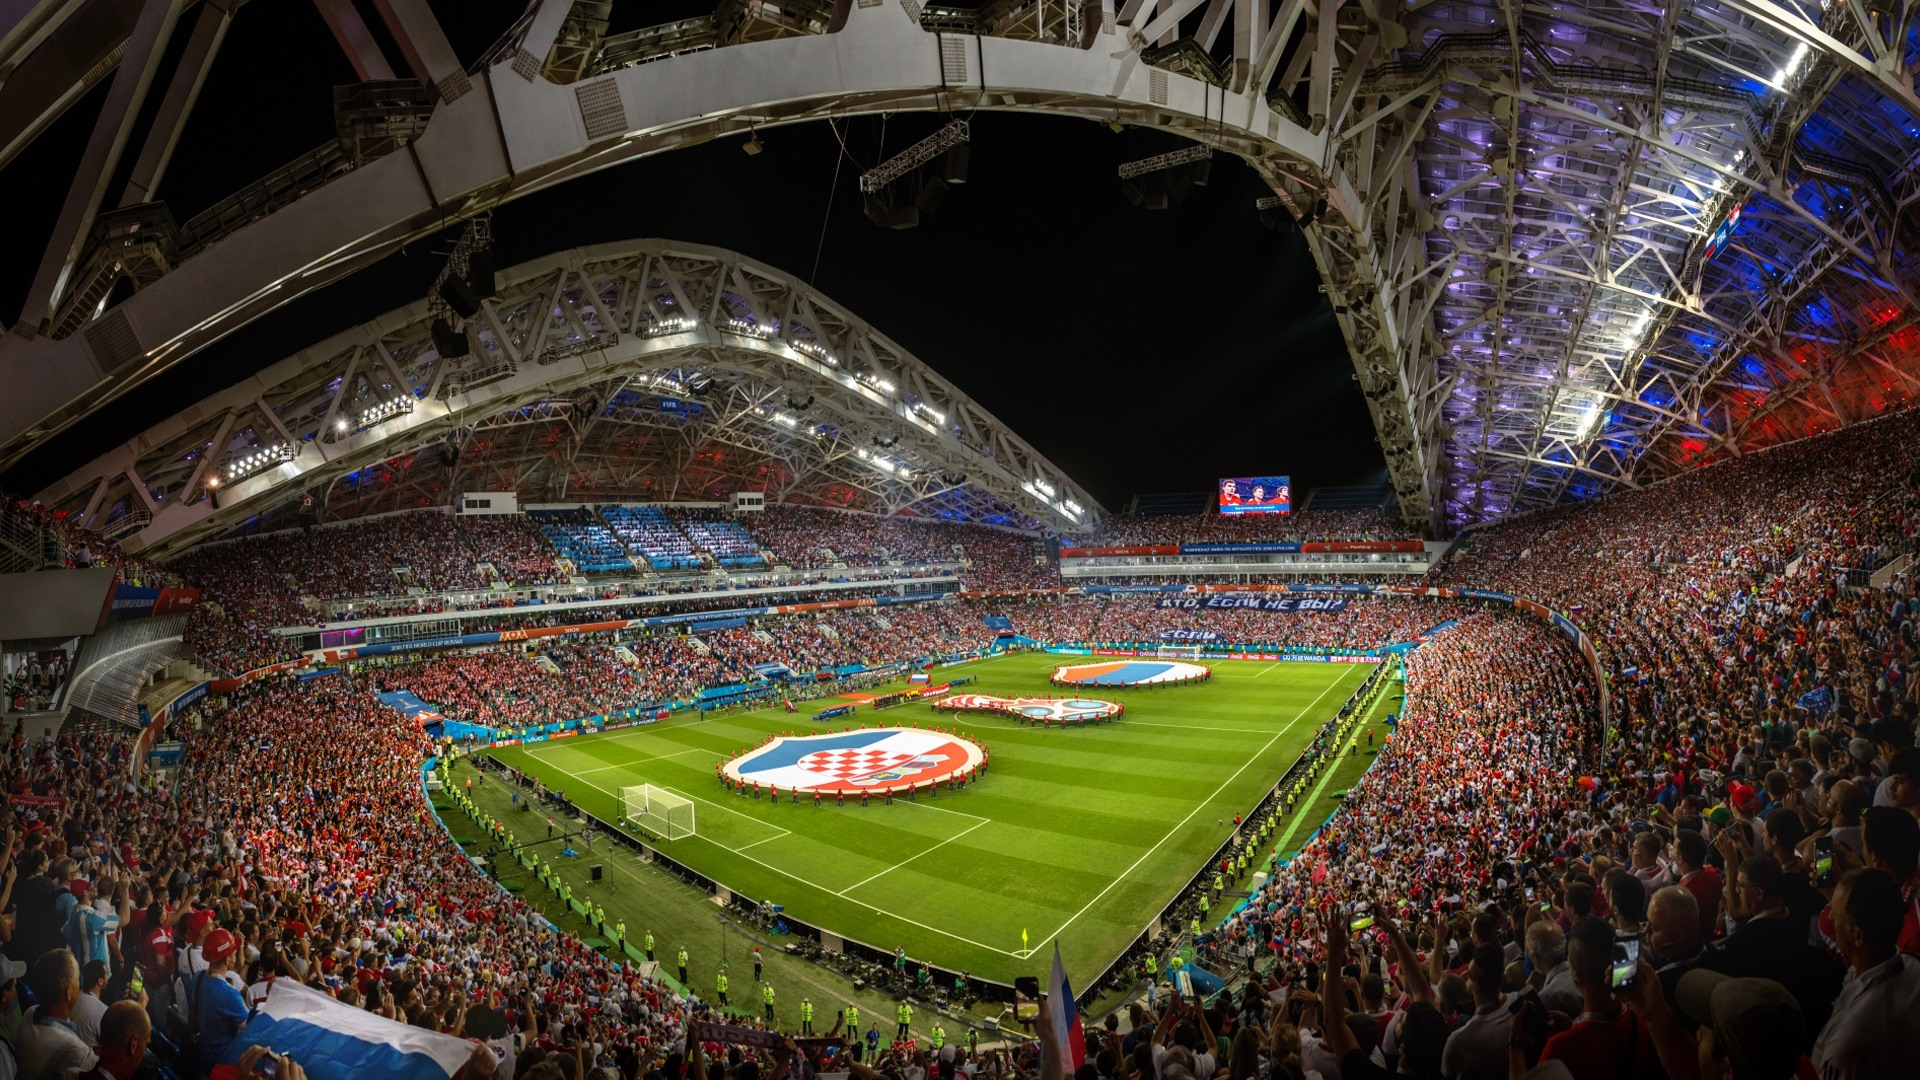 wallpaper football stadium world cup soccer specific stadium 3218140 hd wallpaper backgrounds download world cup soccer specific stadium